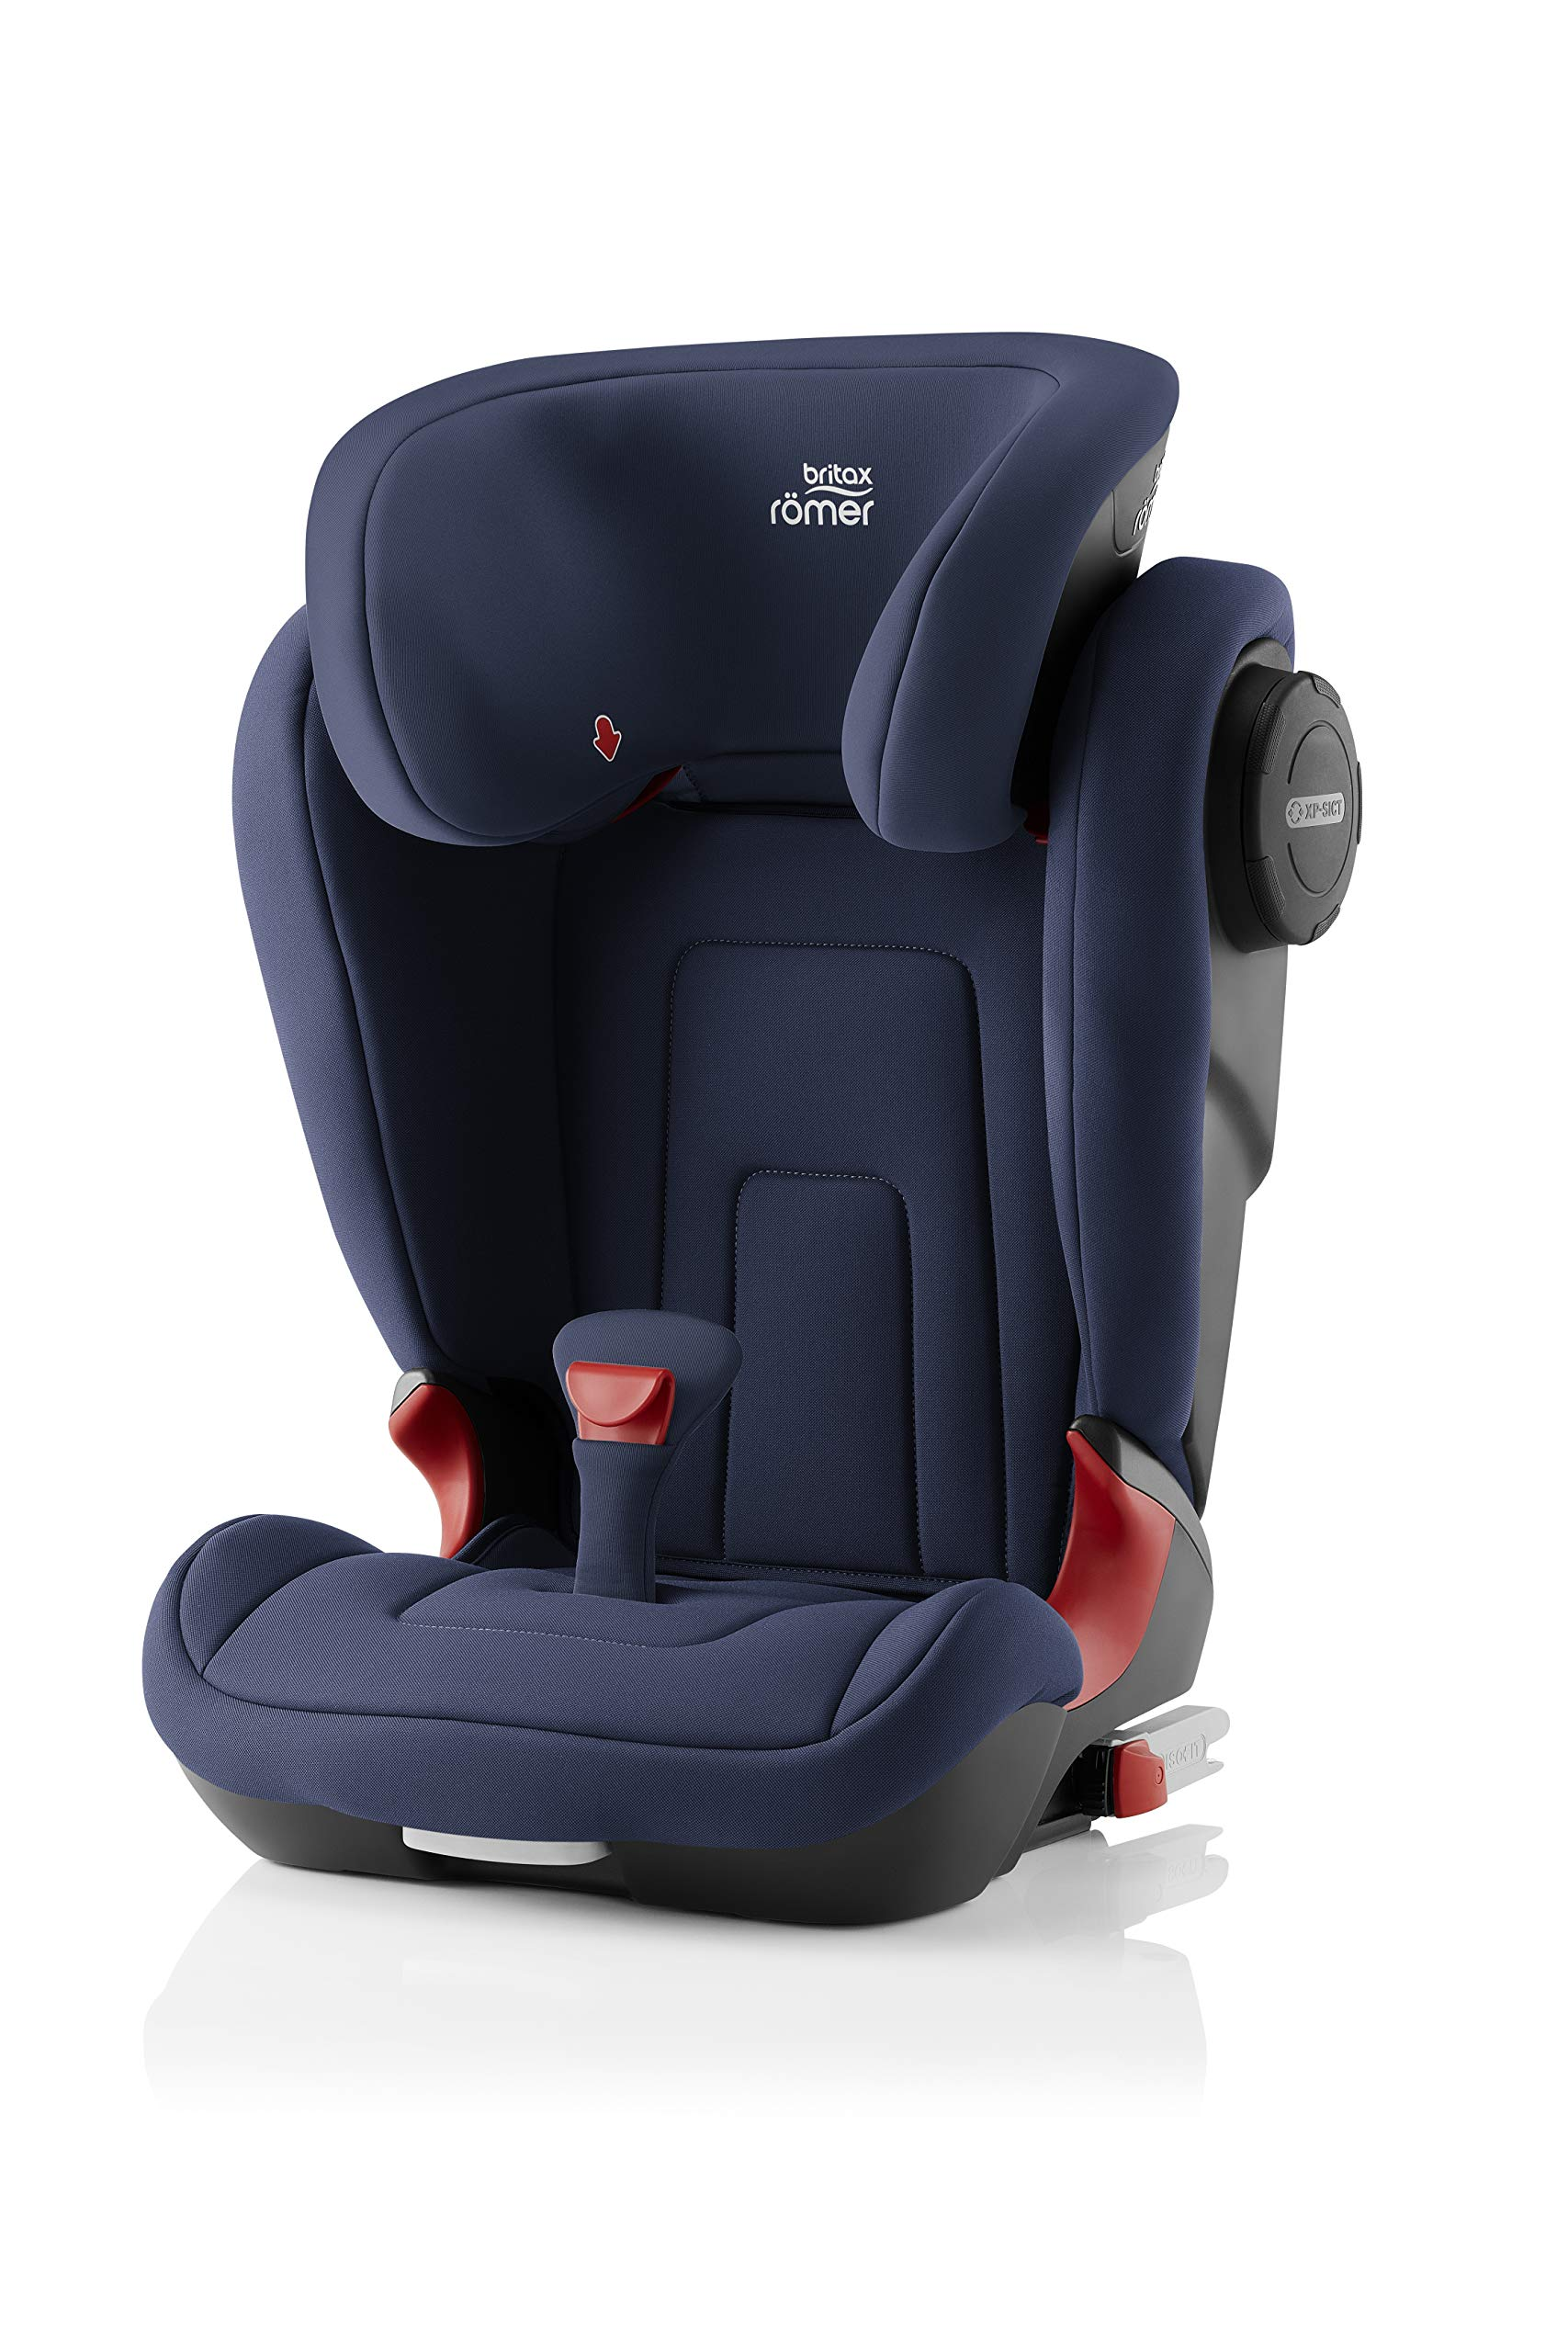 Britax Römer KIDFIX² S Group 2-3 (15-36kg) Car Seat - Moonlight Blue  Advanced side impact protection - sict offers superior protection to your child in the event of a side collision. reducing impact forces by minimising the distance between the car and the car seat. Secure guard - helps to protect your child's delicate abdominal area by adding an extra - a 4th - contact point to the 3-point seat belt. High back booster - protects your child in 3 ways: provides head to hip protection; belt guides provide correct positioning of the seat belt and the padded headrest provides safety and comfort. 1